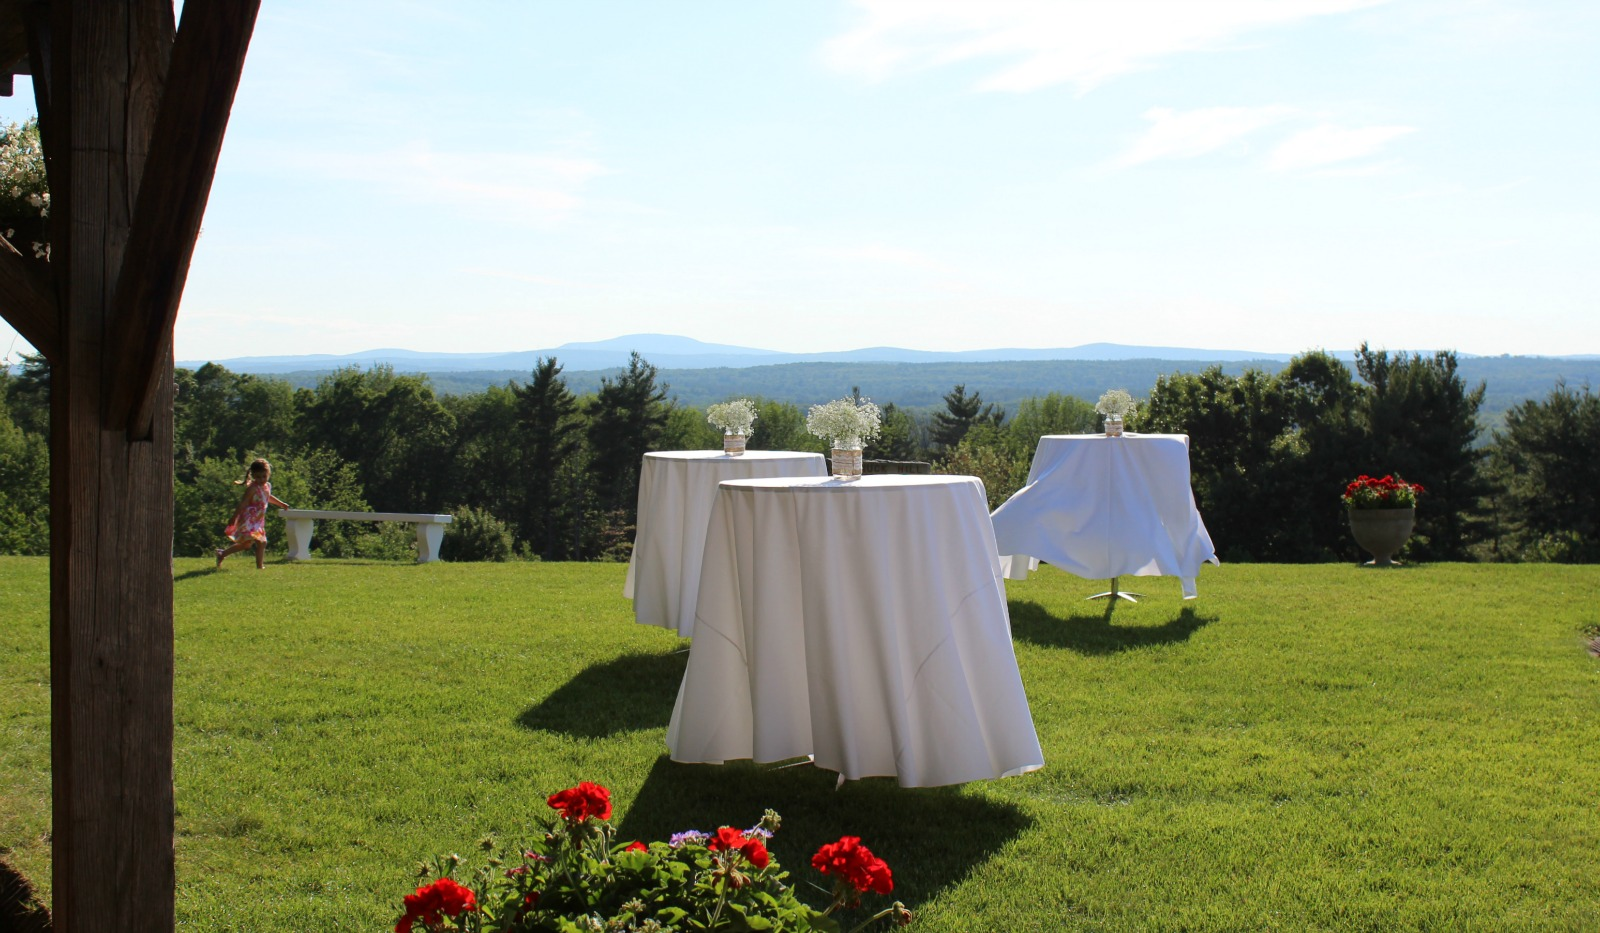 Cocktail tables set on lawn with mountains and Nashua river valley in background